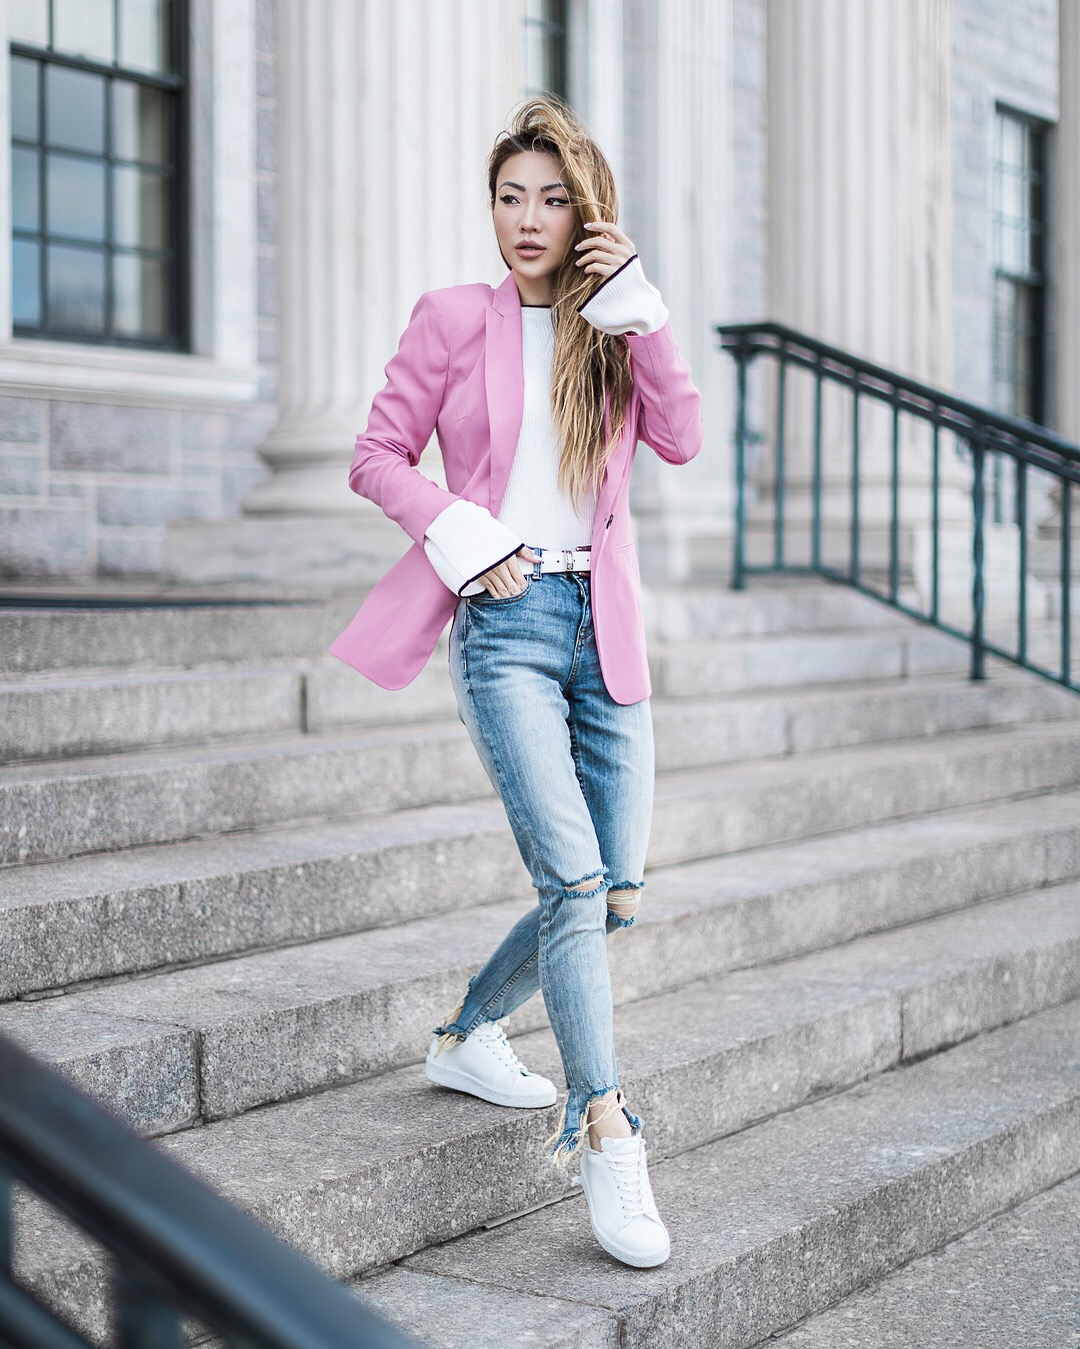 Pink Blazer - 9 Looks that Seamlessly Transition from Winter to Spring // NotJessFashion.com